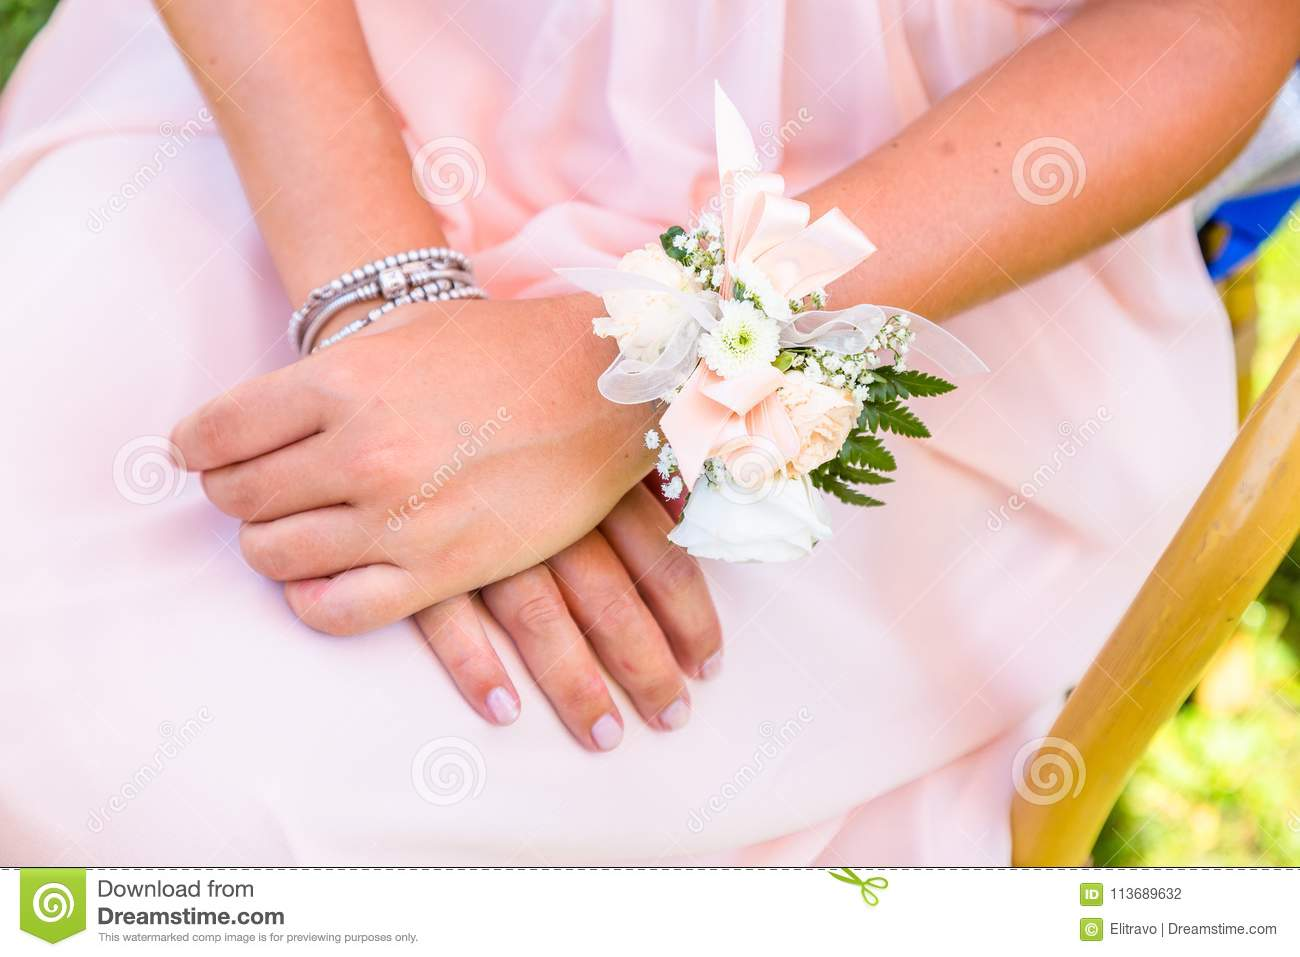 daf7fd1ab8 Young Bridesmaids With Flower Bracelet Stock Photo - Image of ...